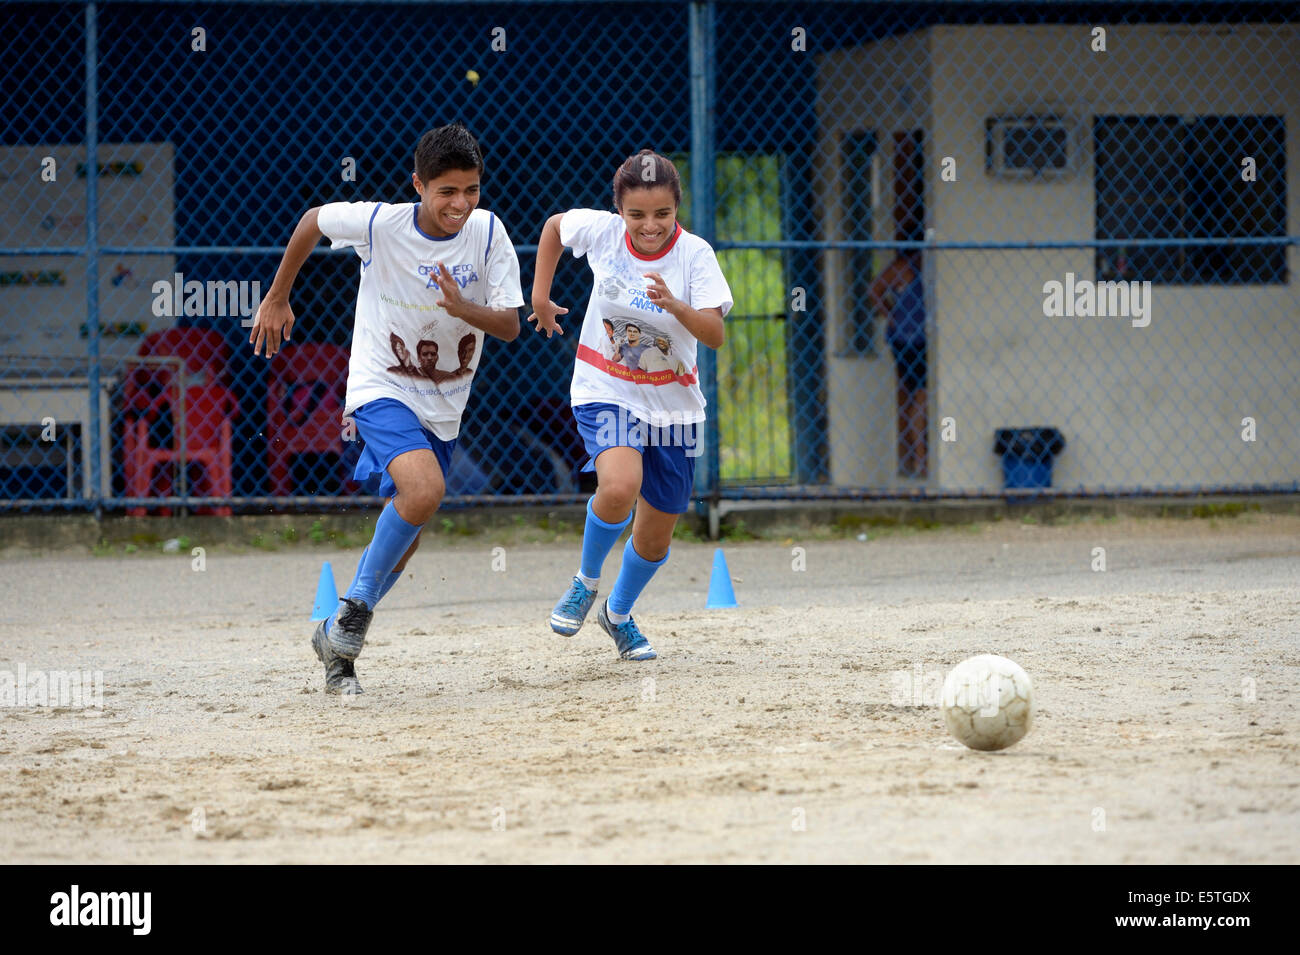 Two teenagers, twins, 16 years, playing football, Craque do Amanha social project, São Gonçalo, Niterói, - Stock Image